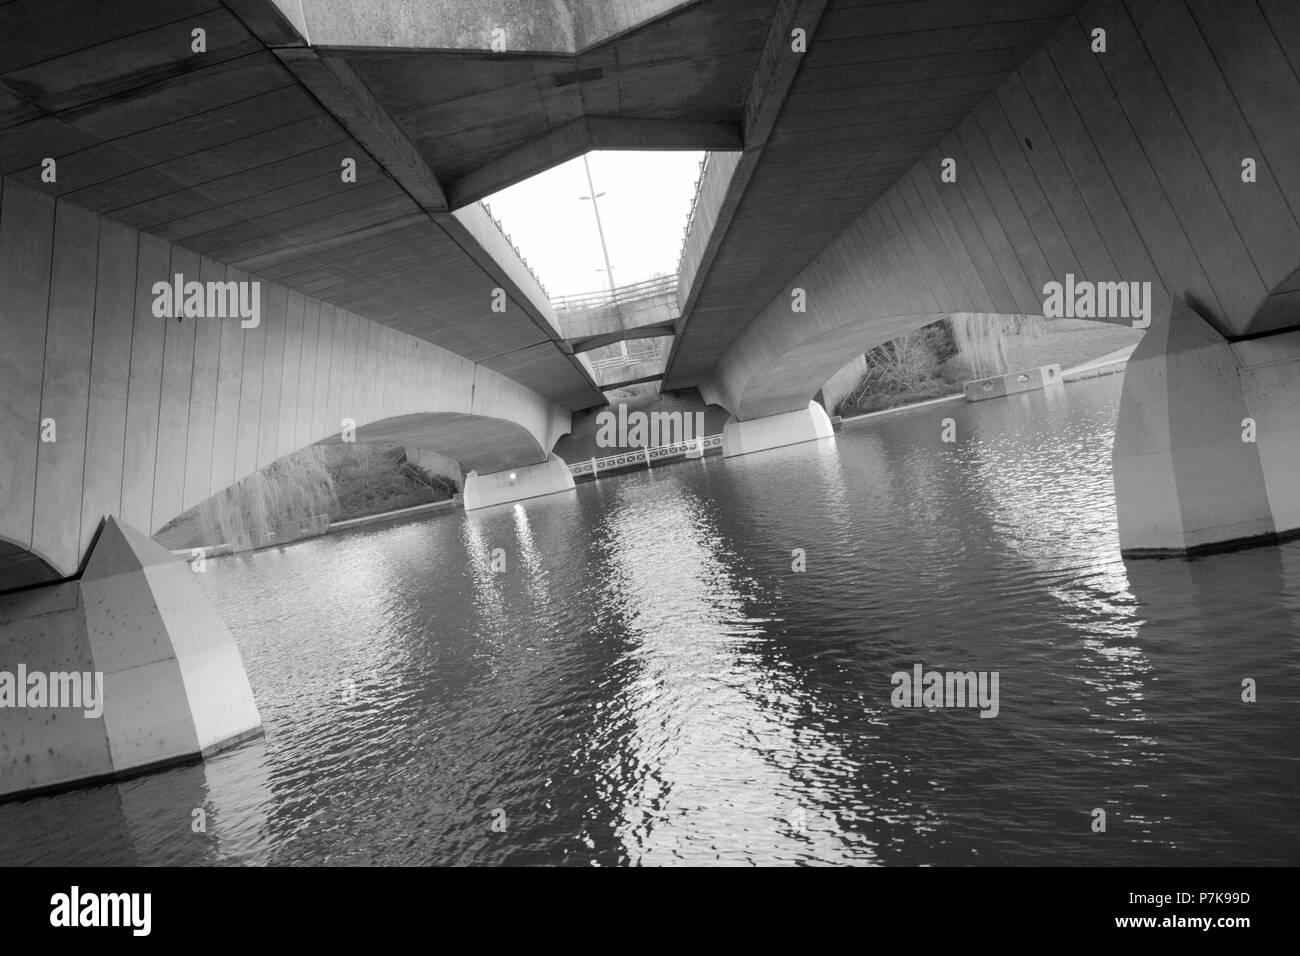 The Tormin bridge from below in black and white. - Stock Image